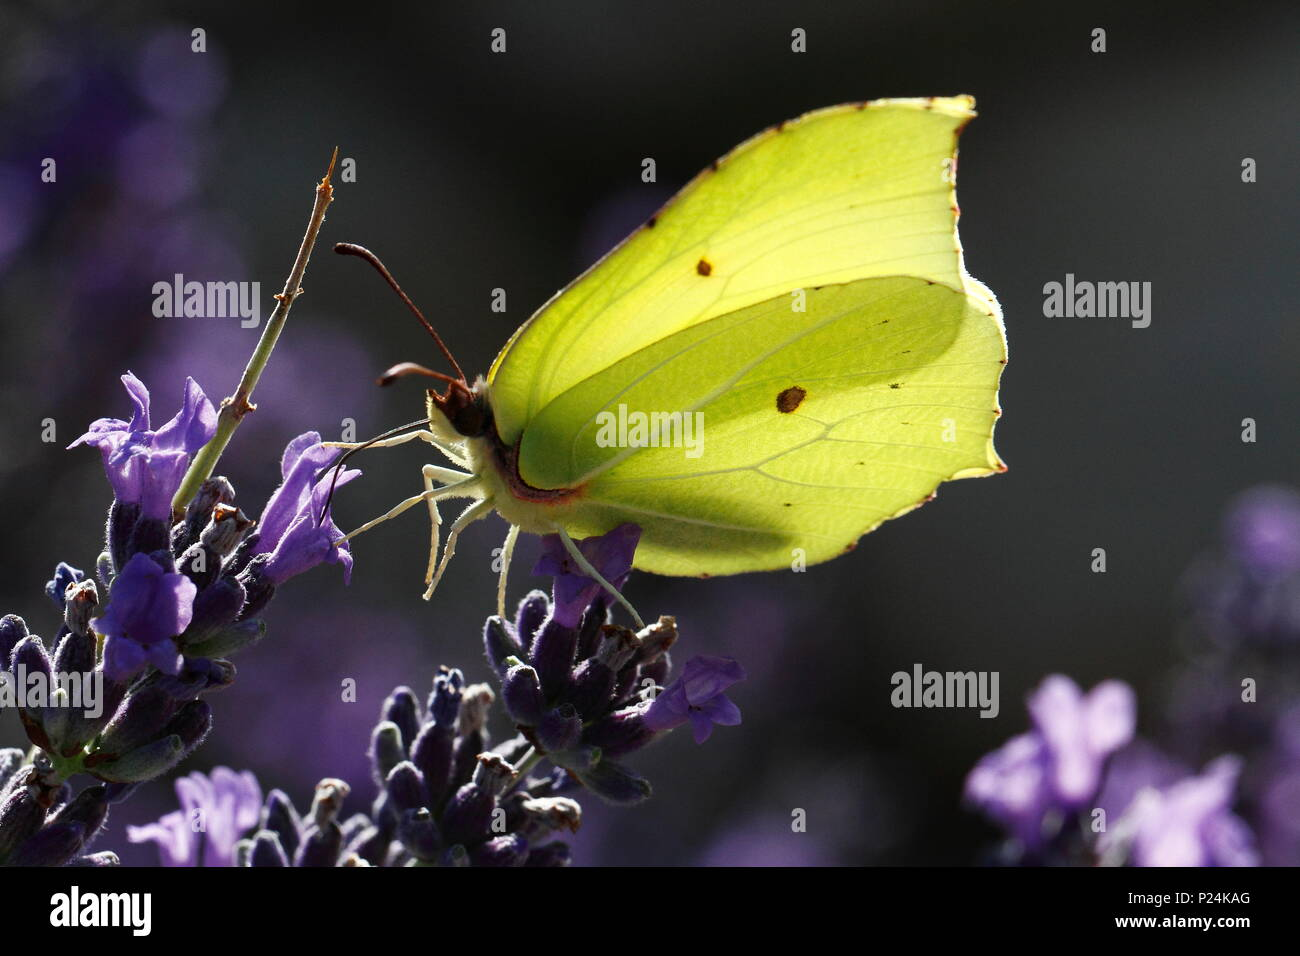 Common brimstone on a flower of lavender - Stock Image